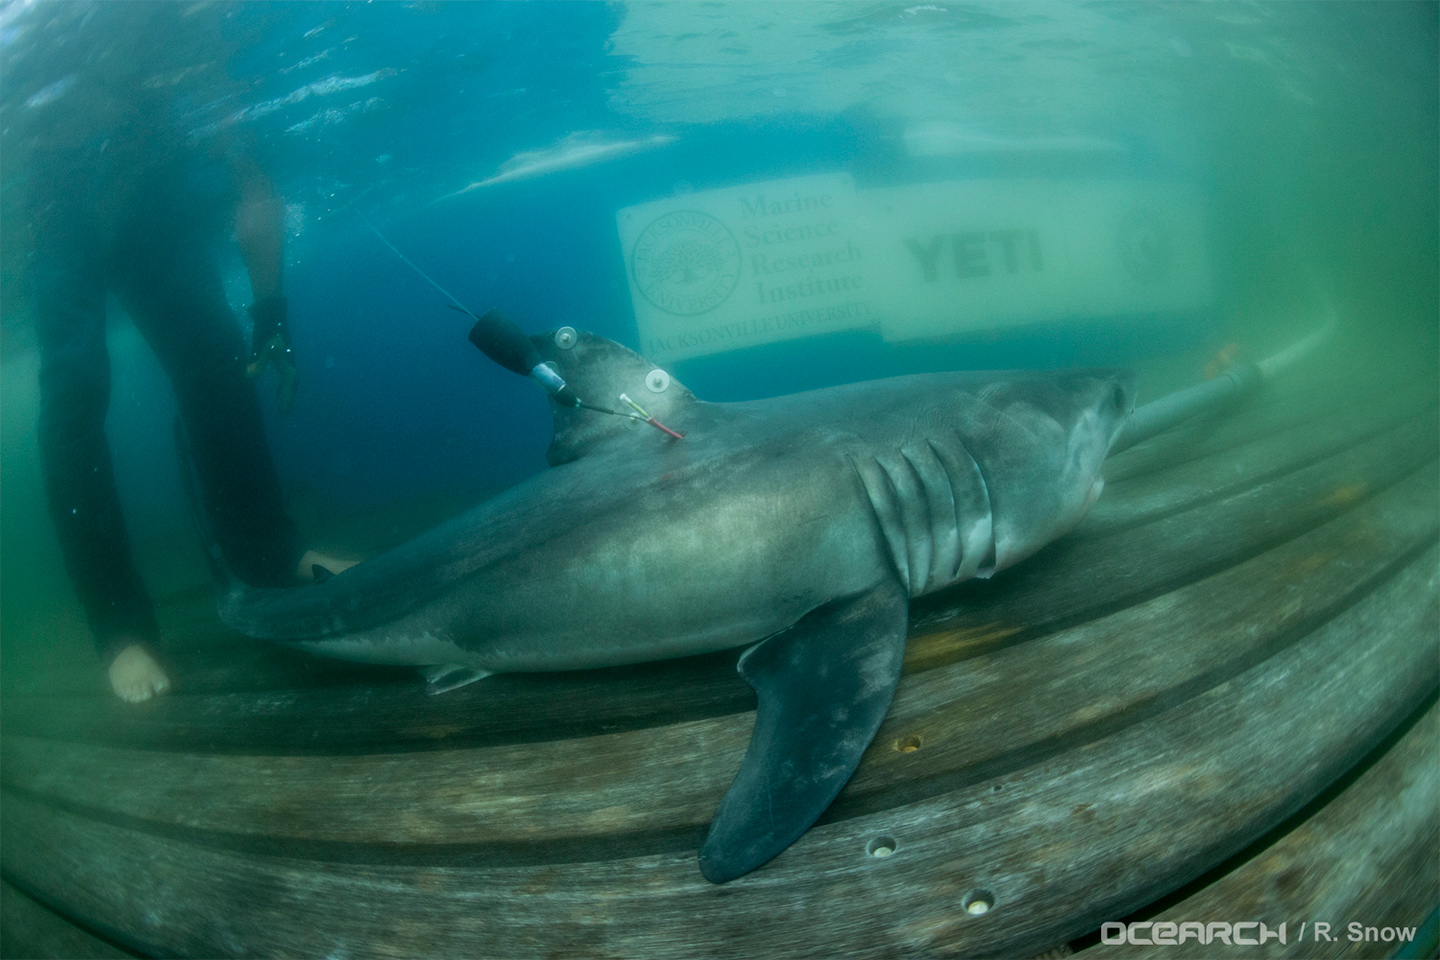 a research on the great white shark A 600-kilogram great white shark named hilton, tagged by the research group ocearch in march in south carolina, has been cruising off canada's east coast for months.